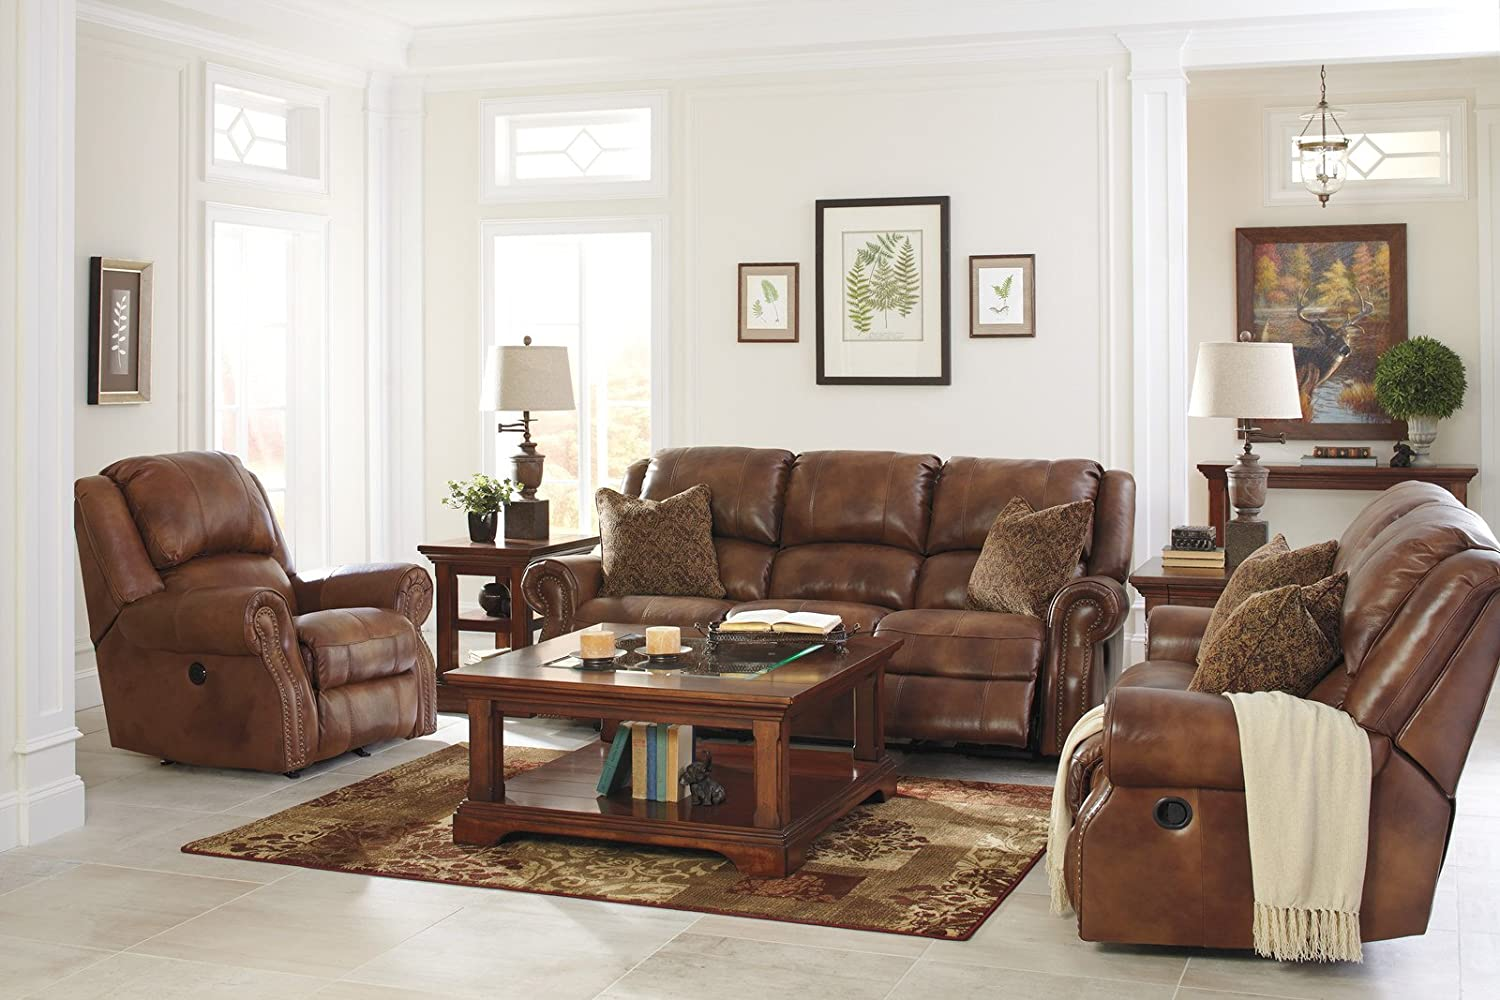 Amazon com  Ashley Furniture Signature Design   Walworth Recliner Chair    Manual Reclining   Auburn Brown  Kitchen   Dining. Amazon com  Ashley Furniture Signature Design   Walworth Recliner